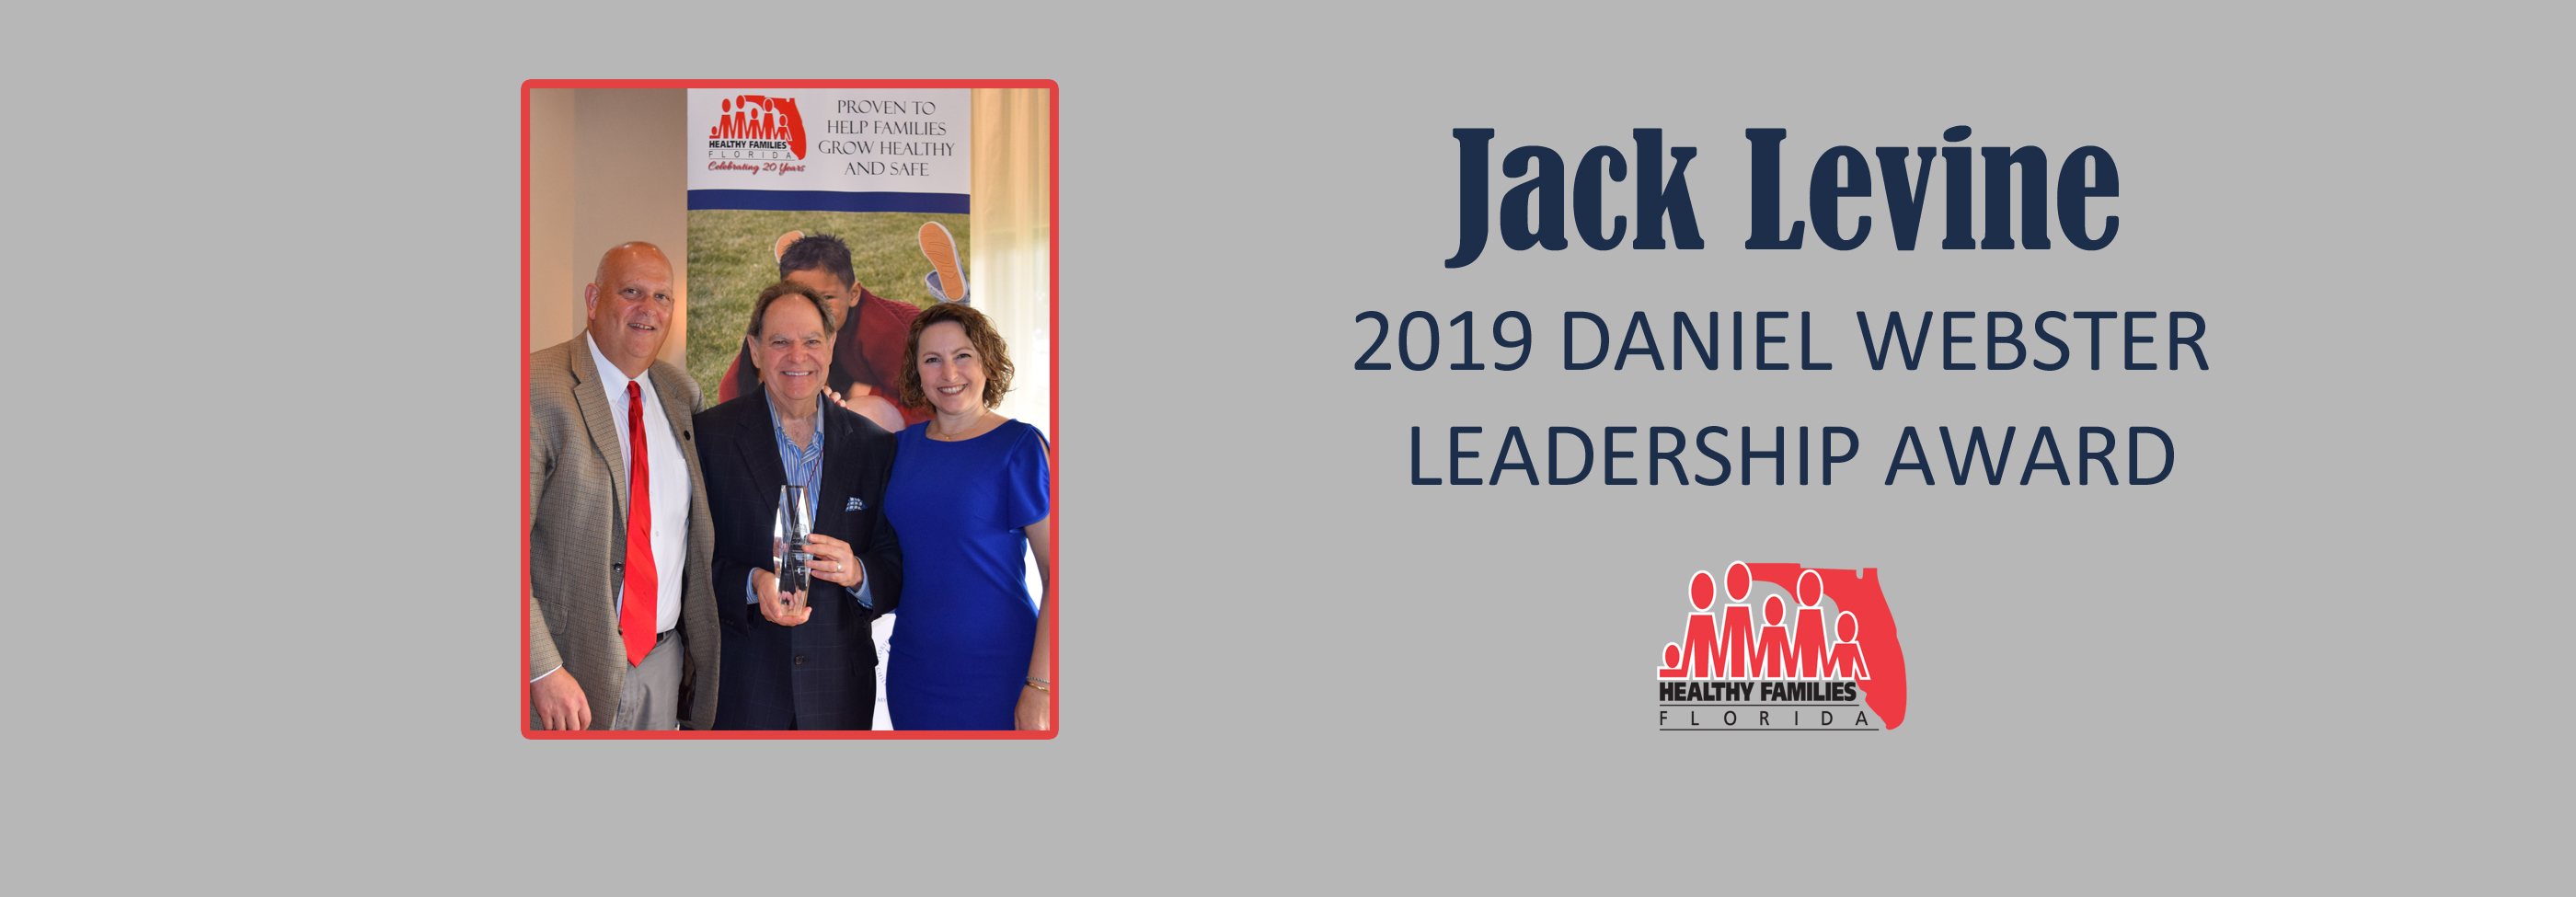 Jack Levine Accepts the 2017 Daniel Webster Leadership Award